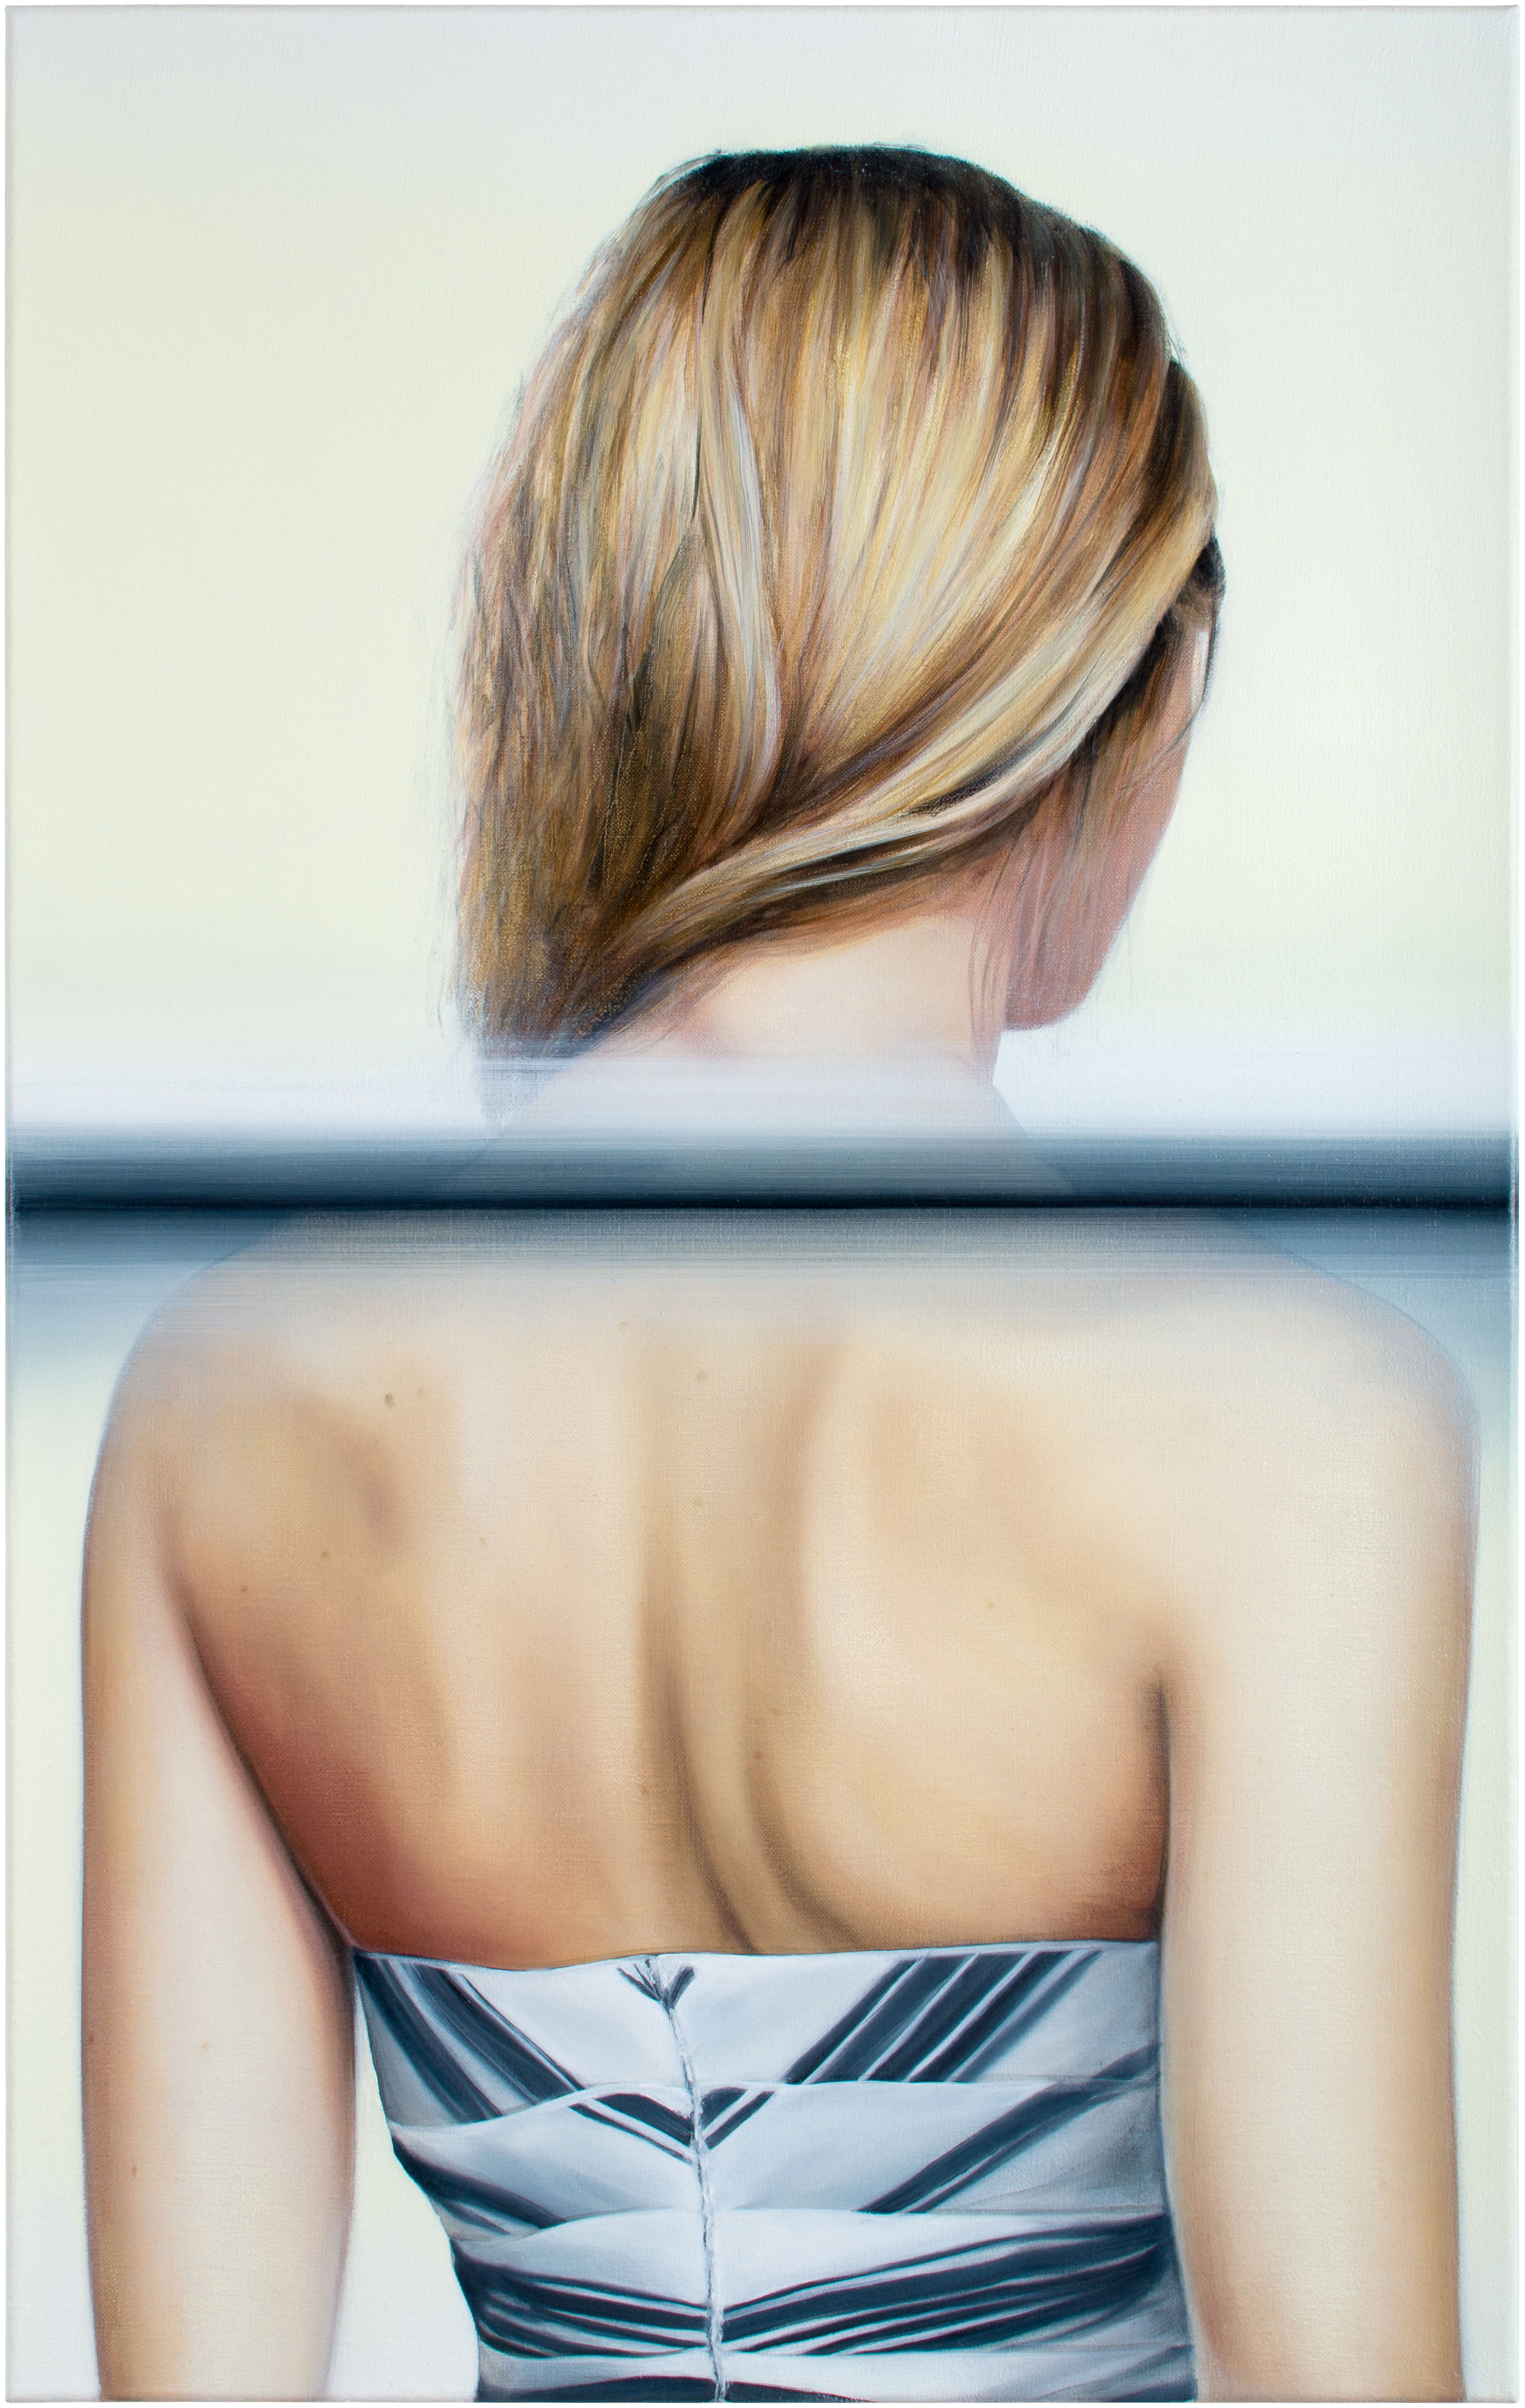 Frau mit Rücken, Blond, Betty, Gerhard Richter